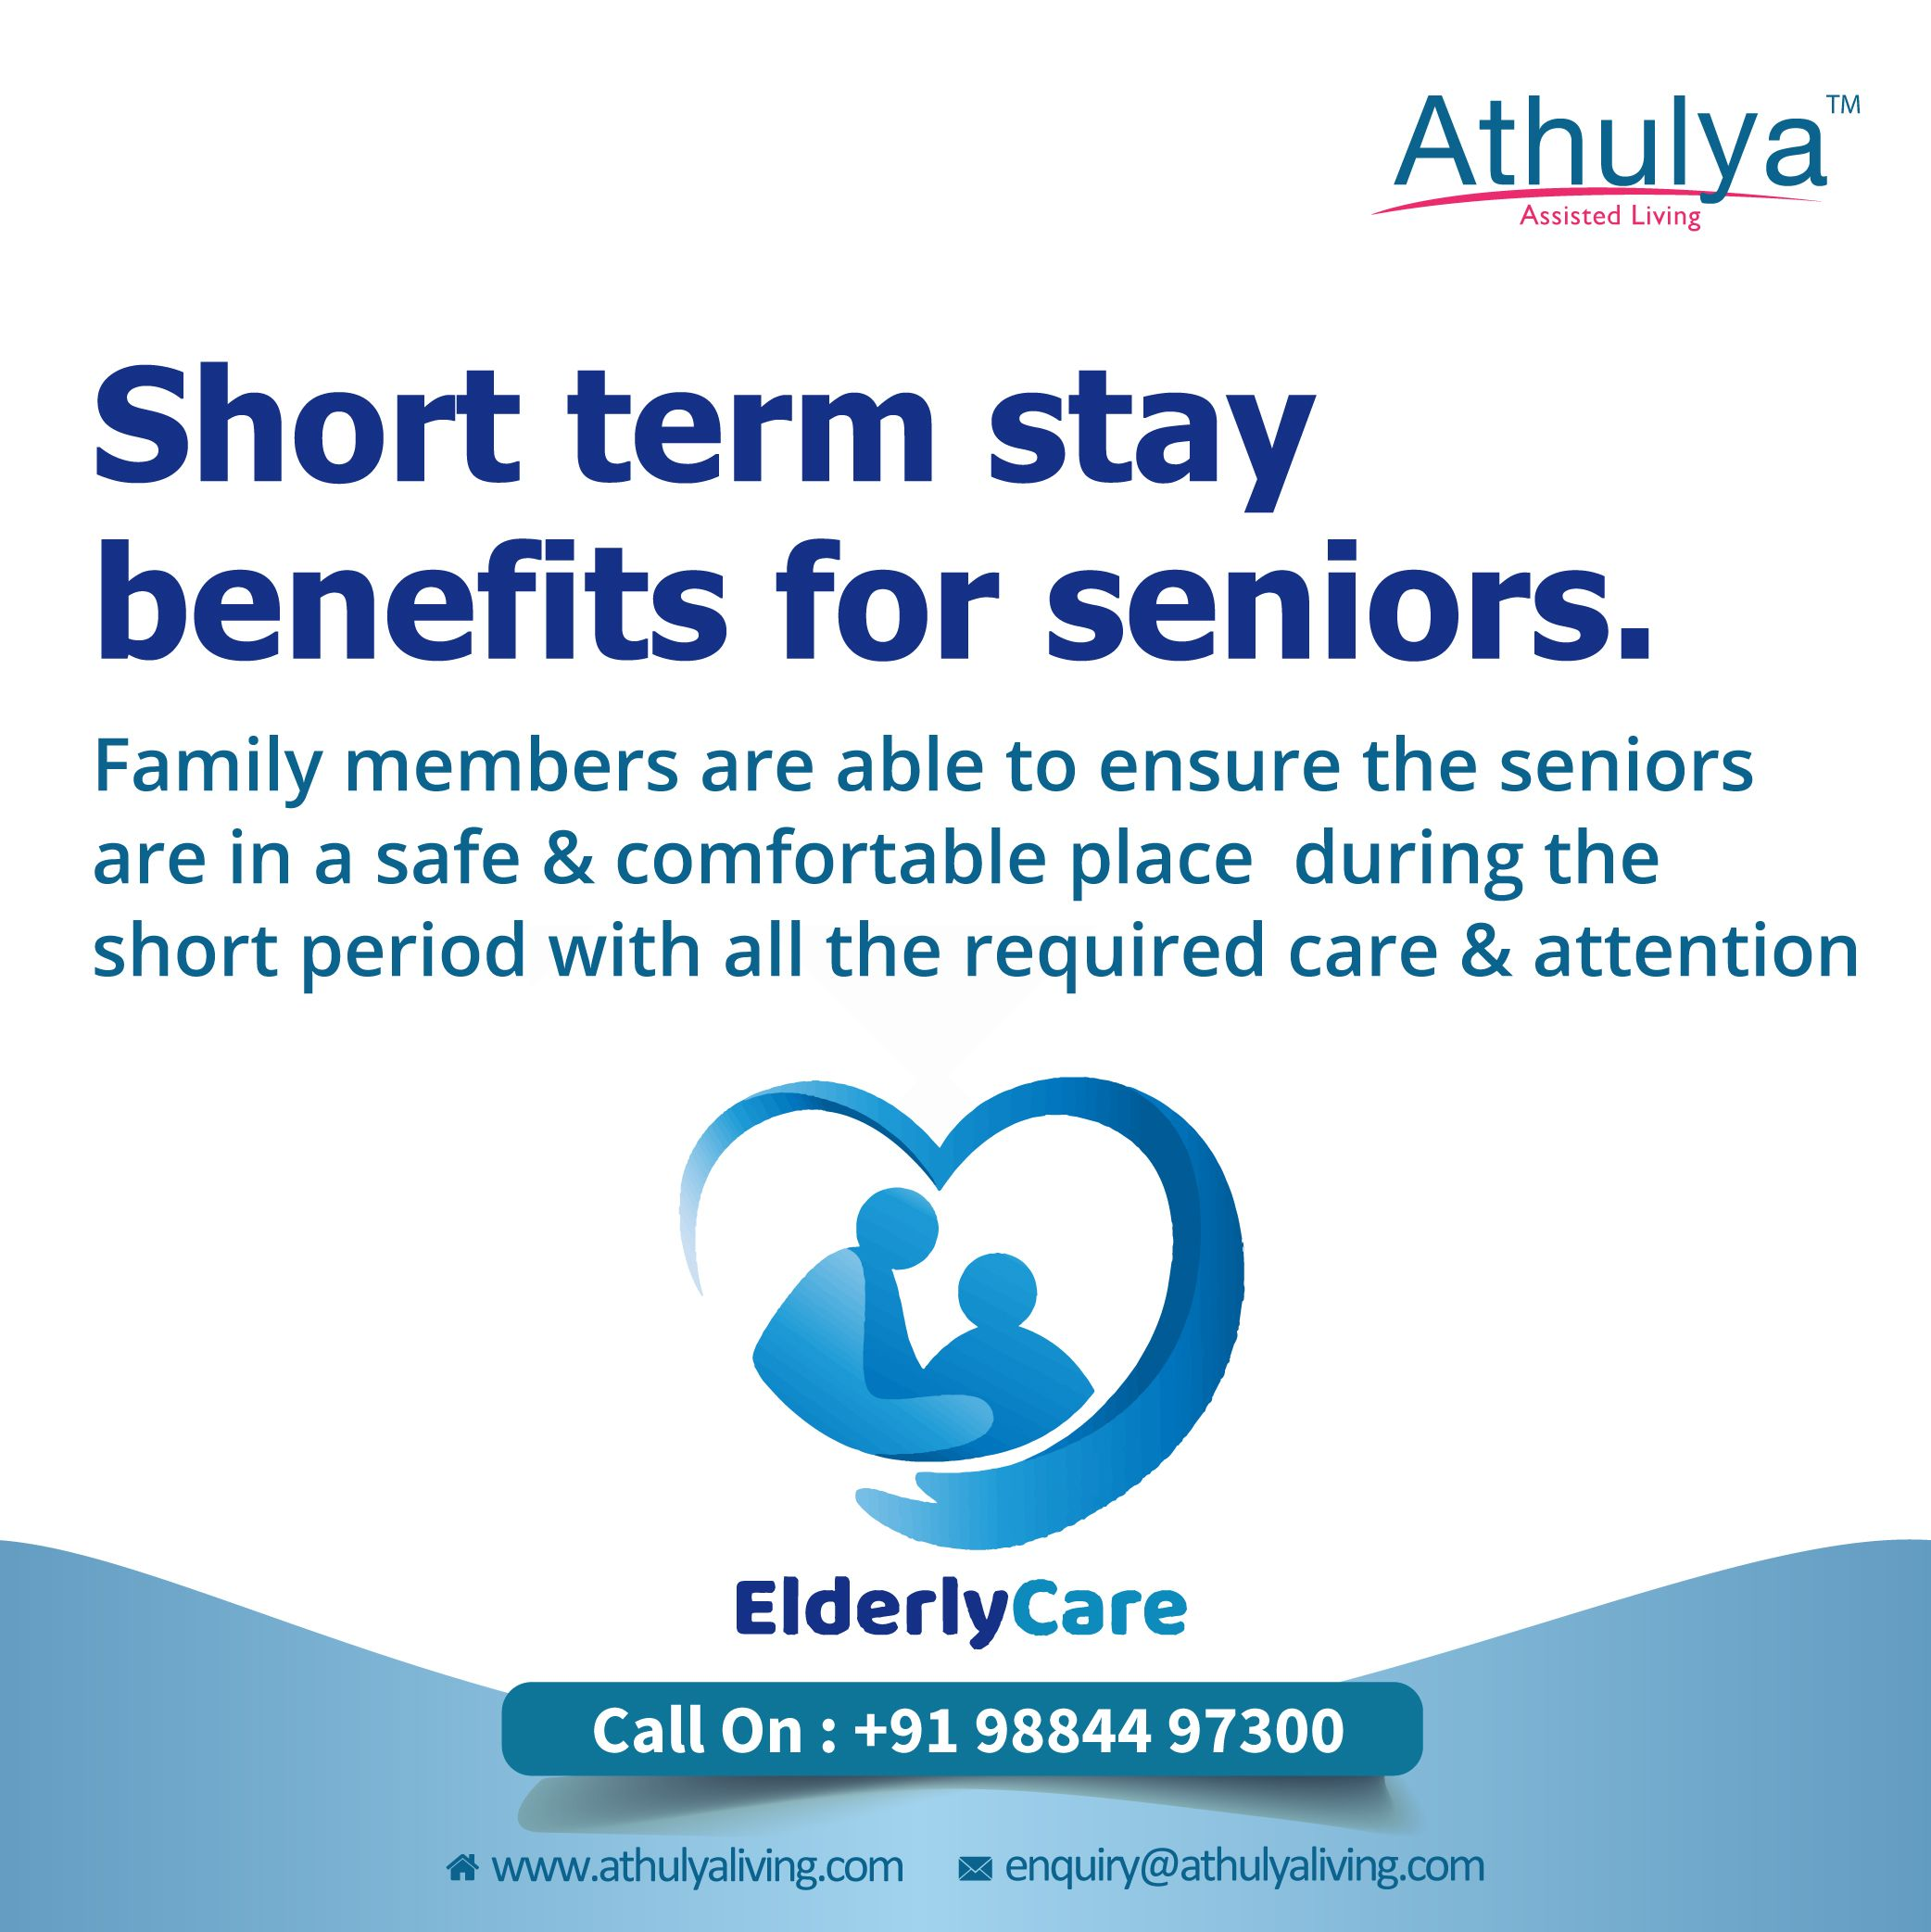 Pin on Athulya Assisted Living